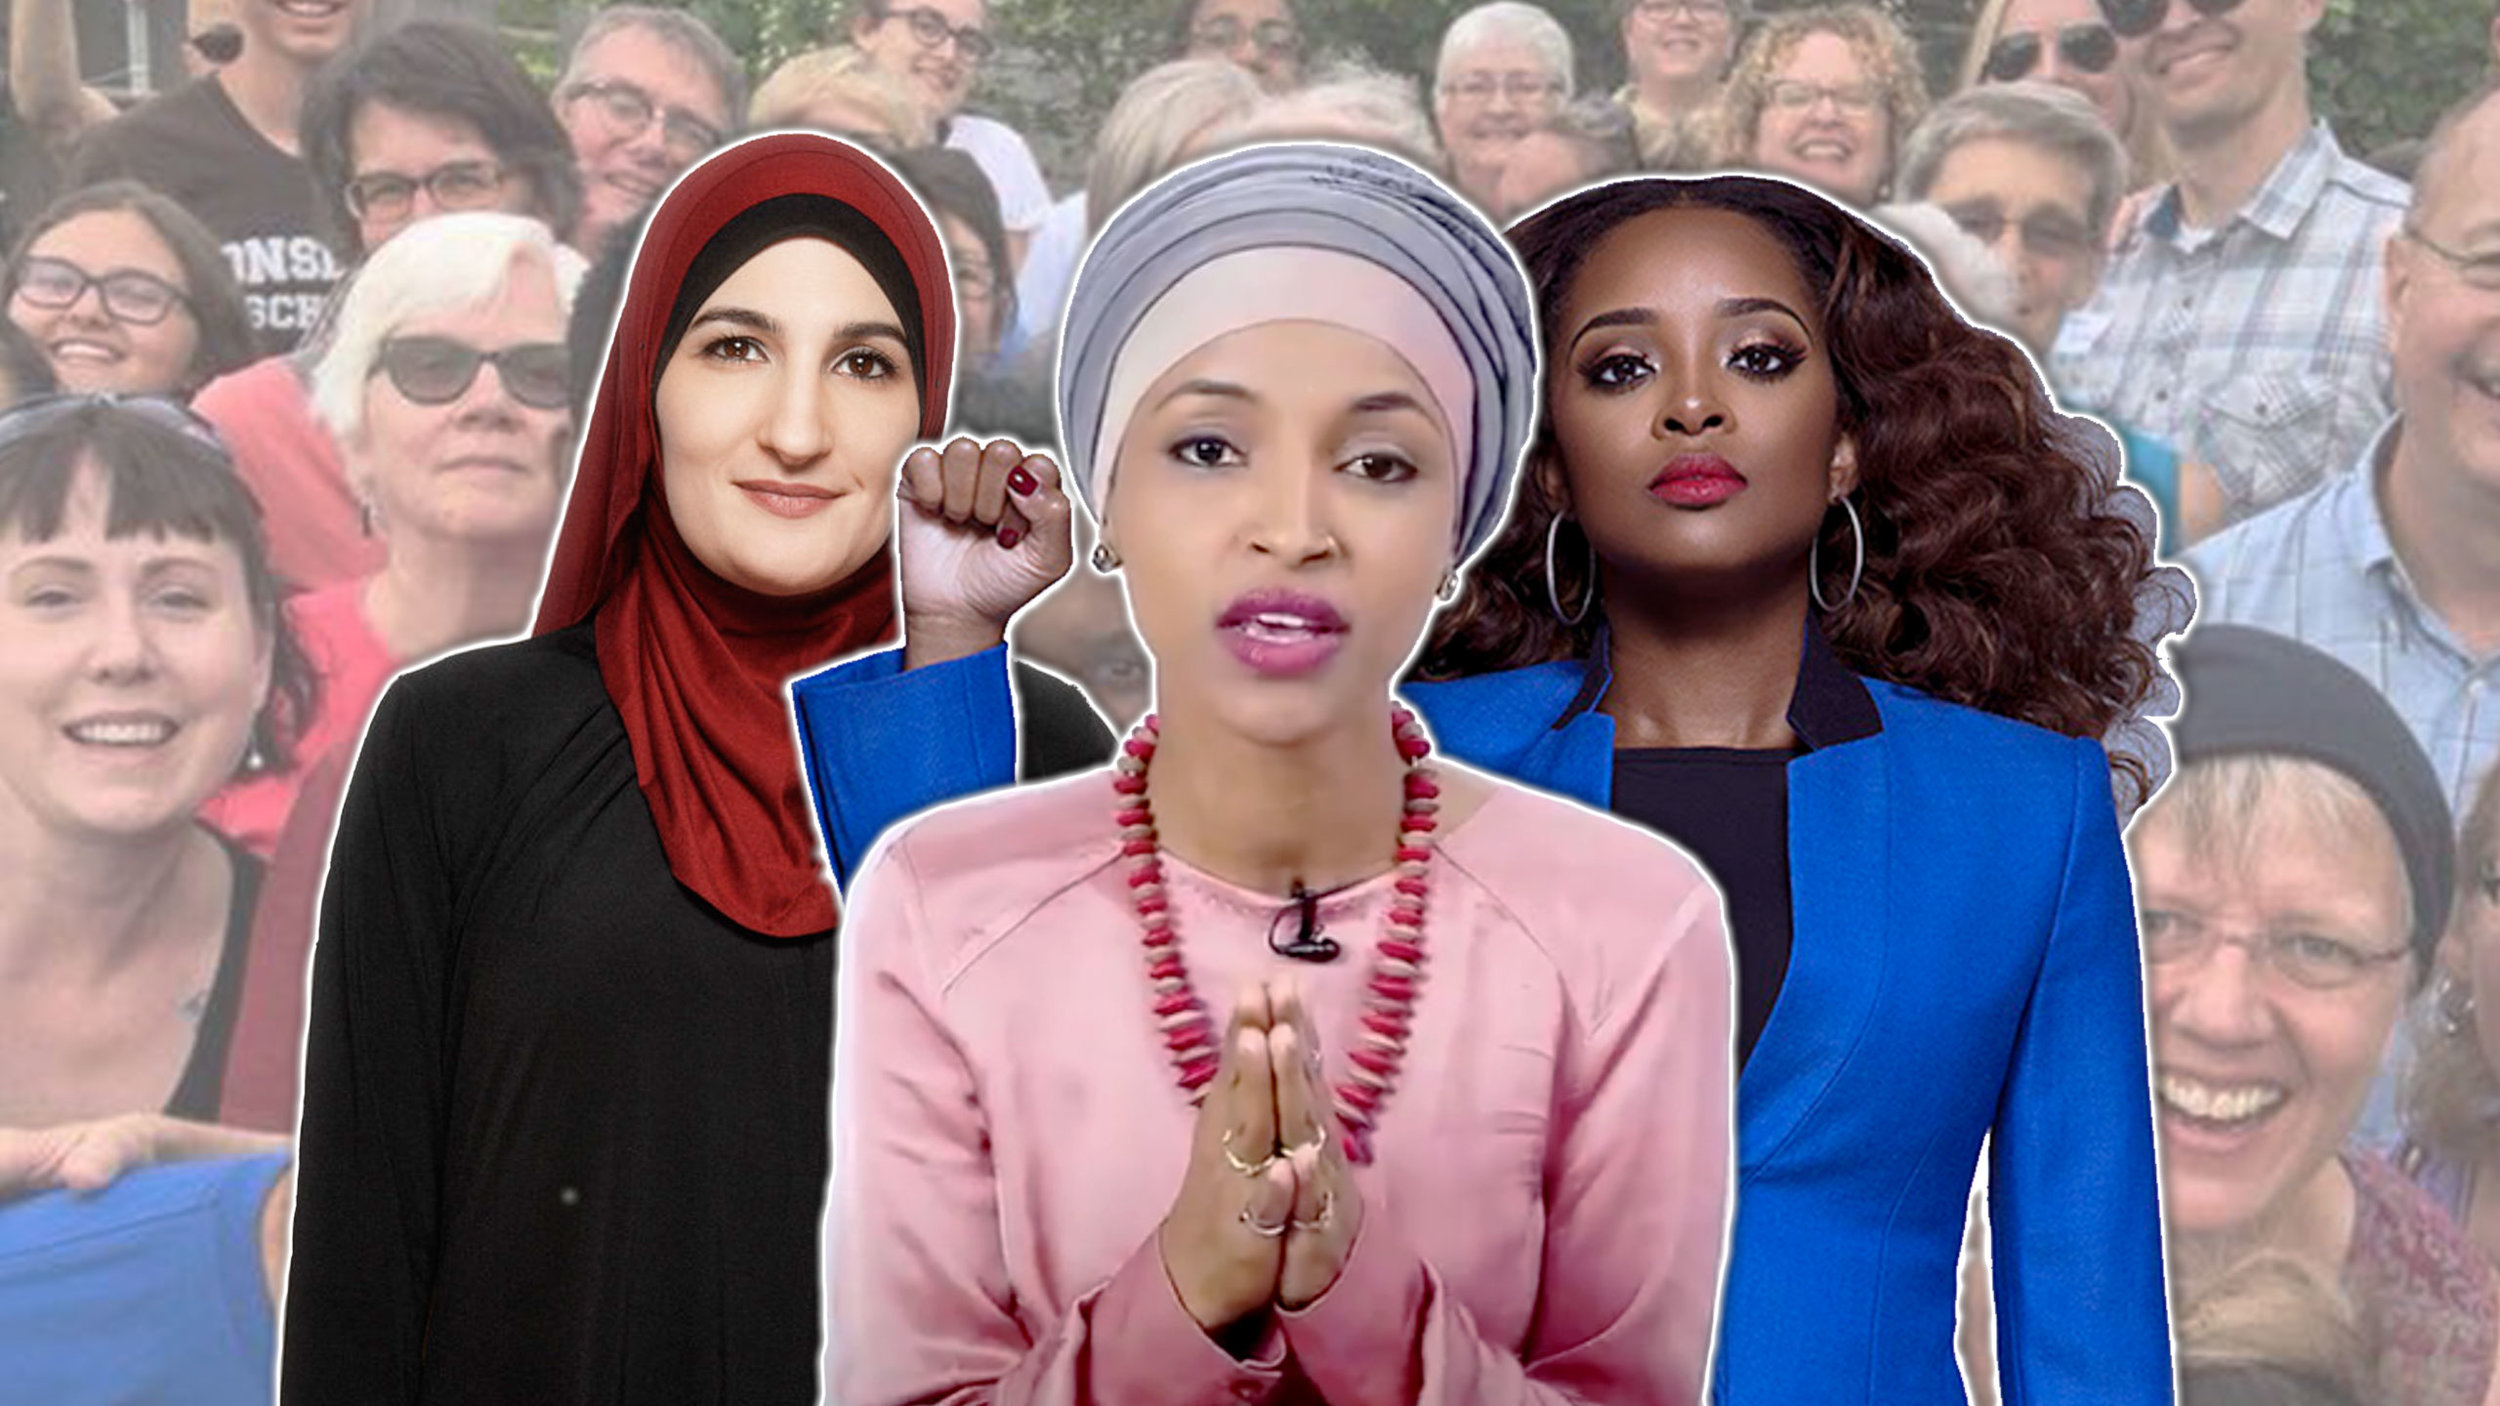 Linda Sarsour, Ilhan Omar, and Tamika Mallory, white-haters, man-haters, America-haters…